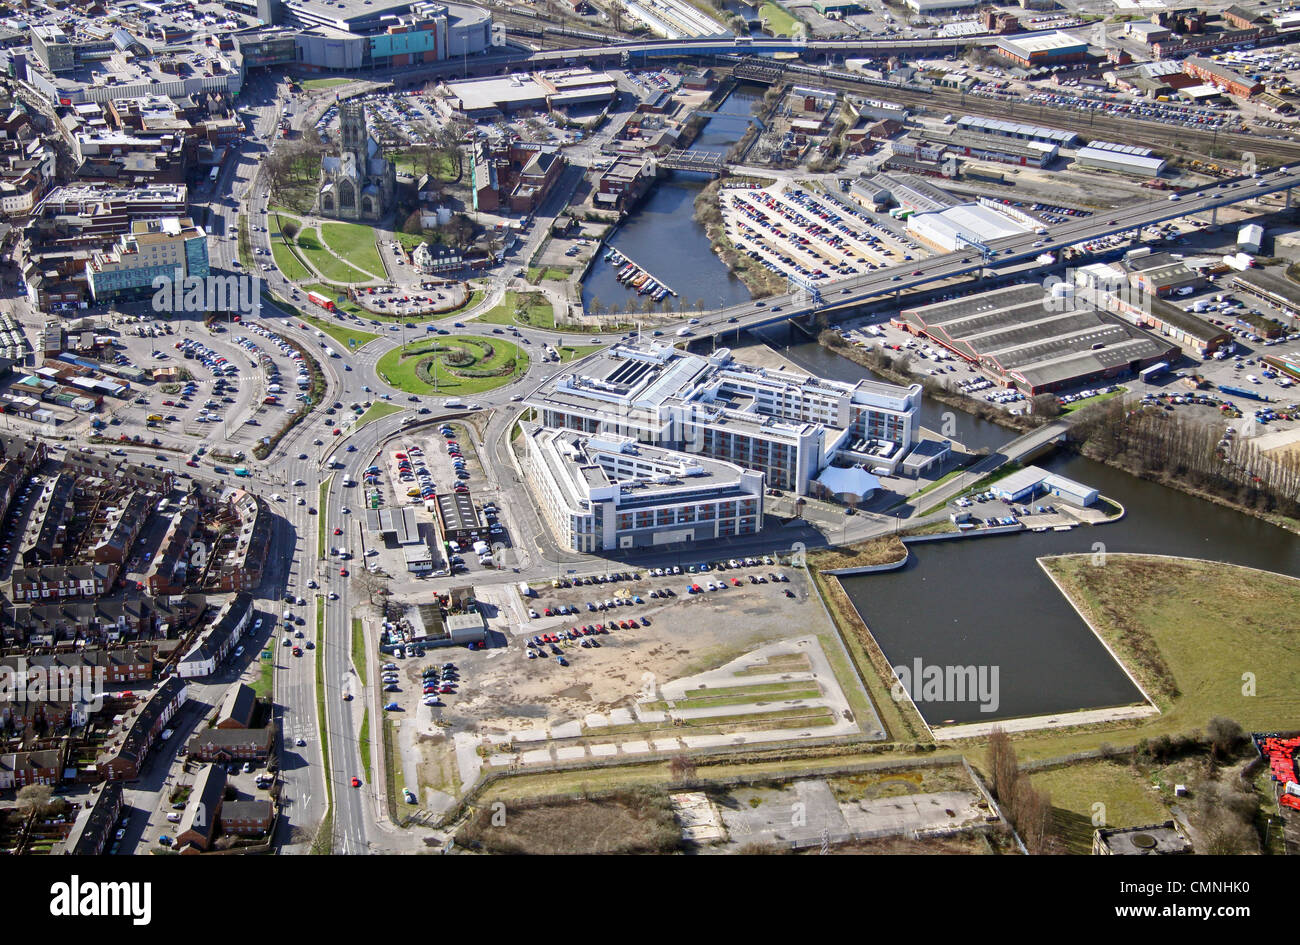 Aerial view of Doncaster waterside area - Stock Image